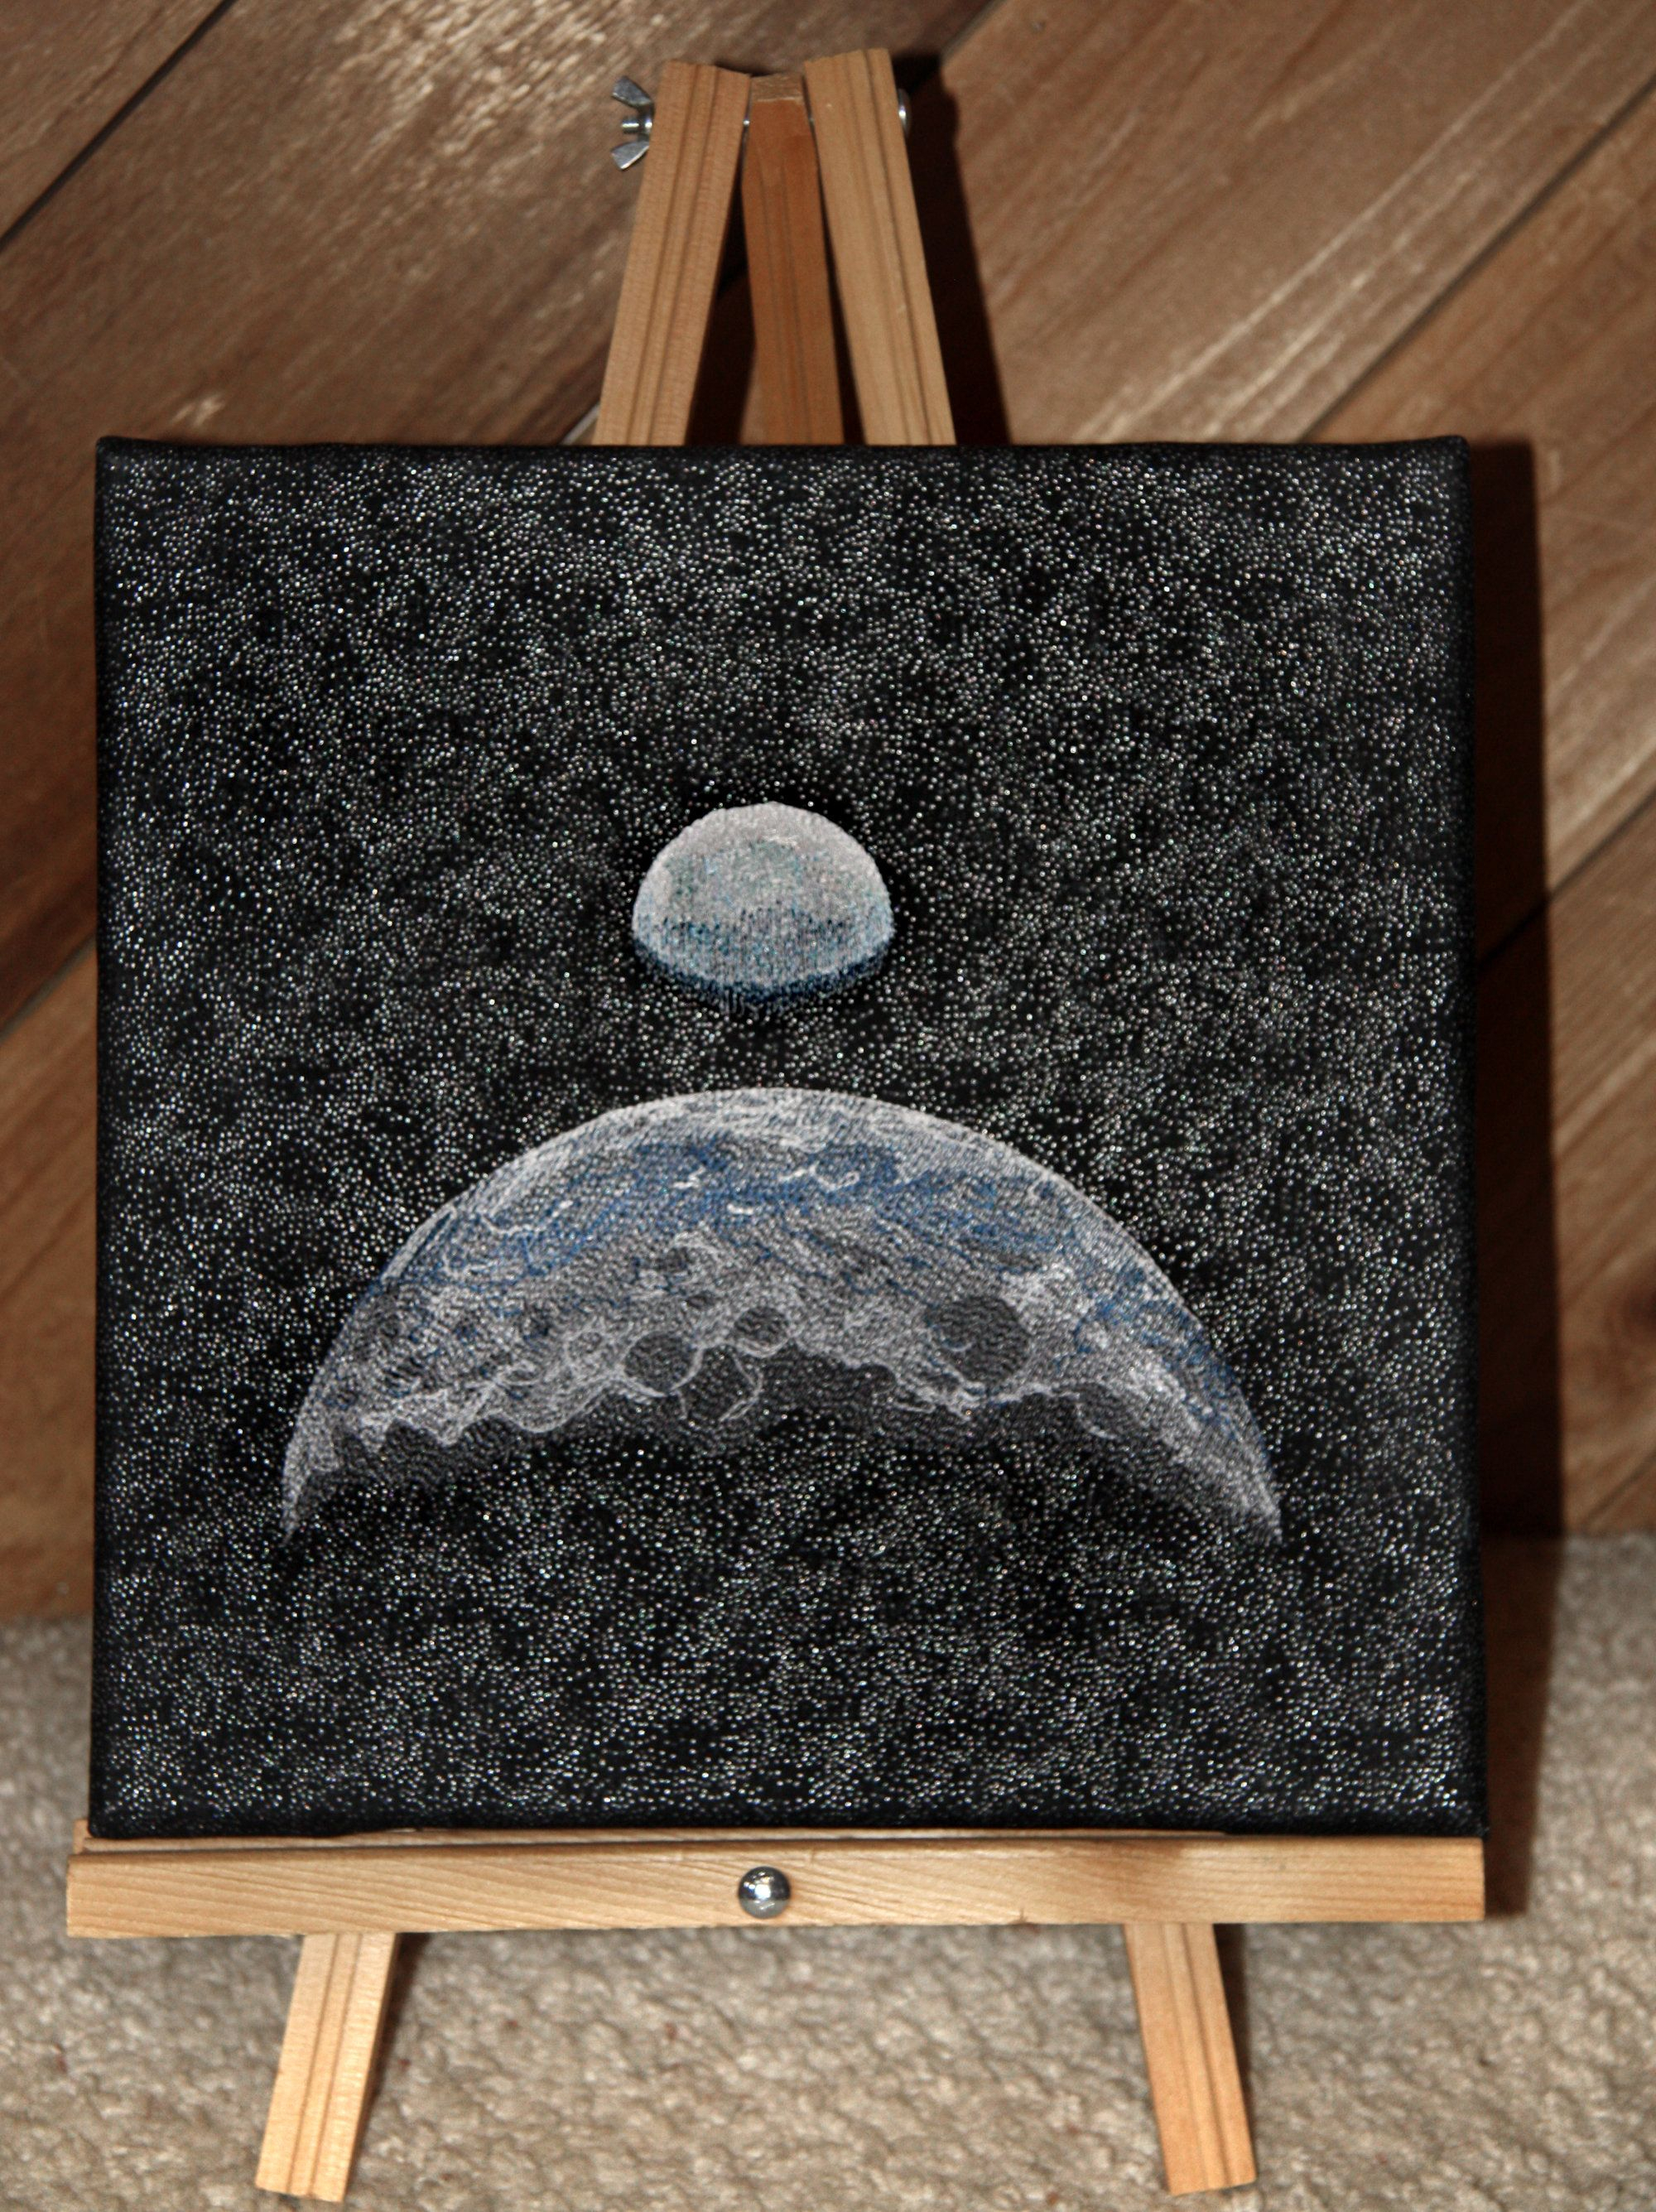 Lunar Landing 50Th Anniversary Handmade Embroidered Wall Art throughout Landing Art Wall Decor (Image 16 of 30)